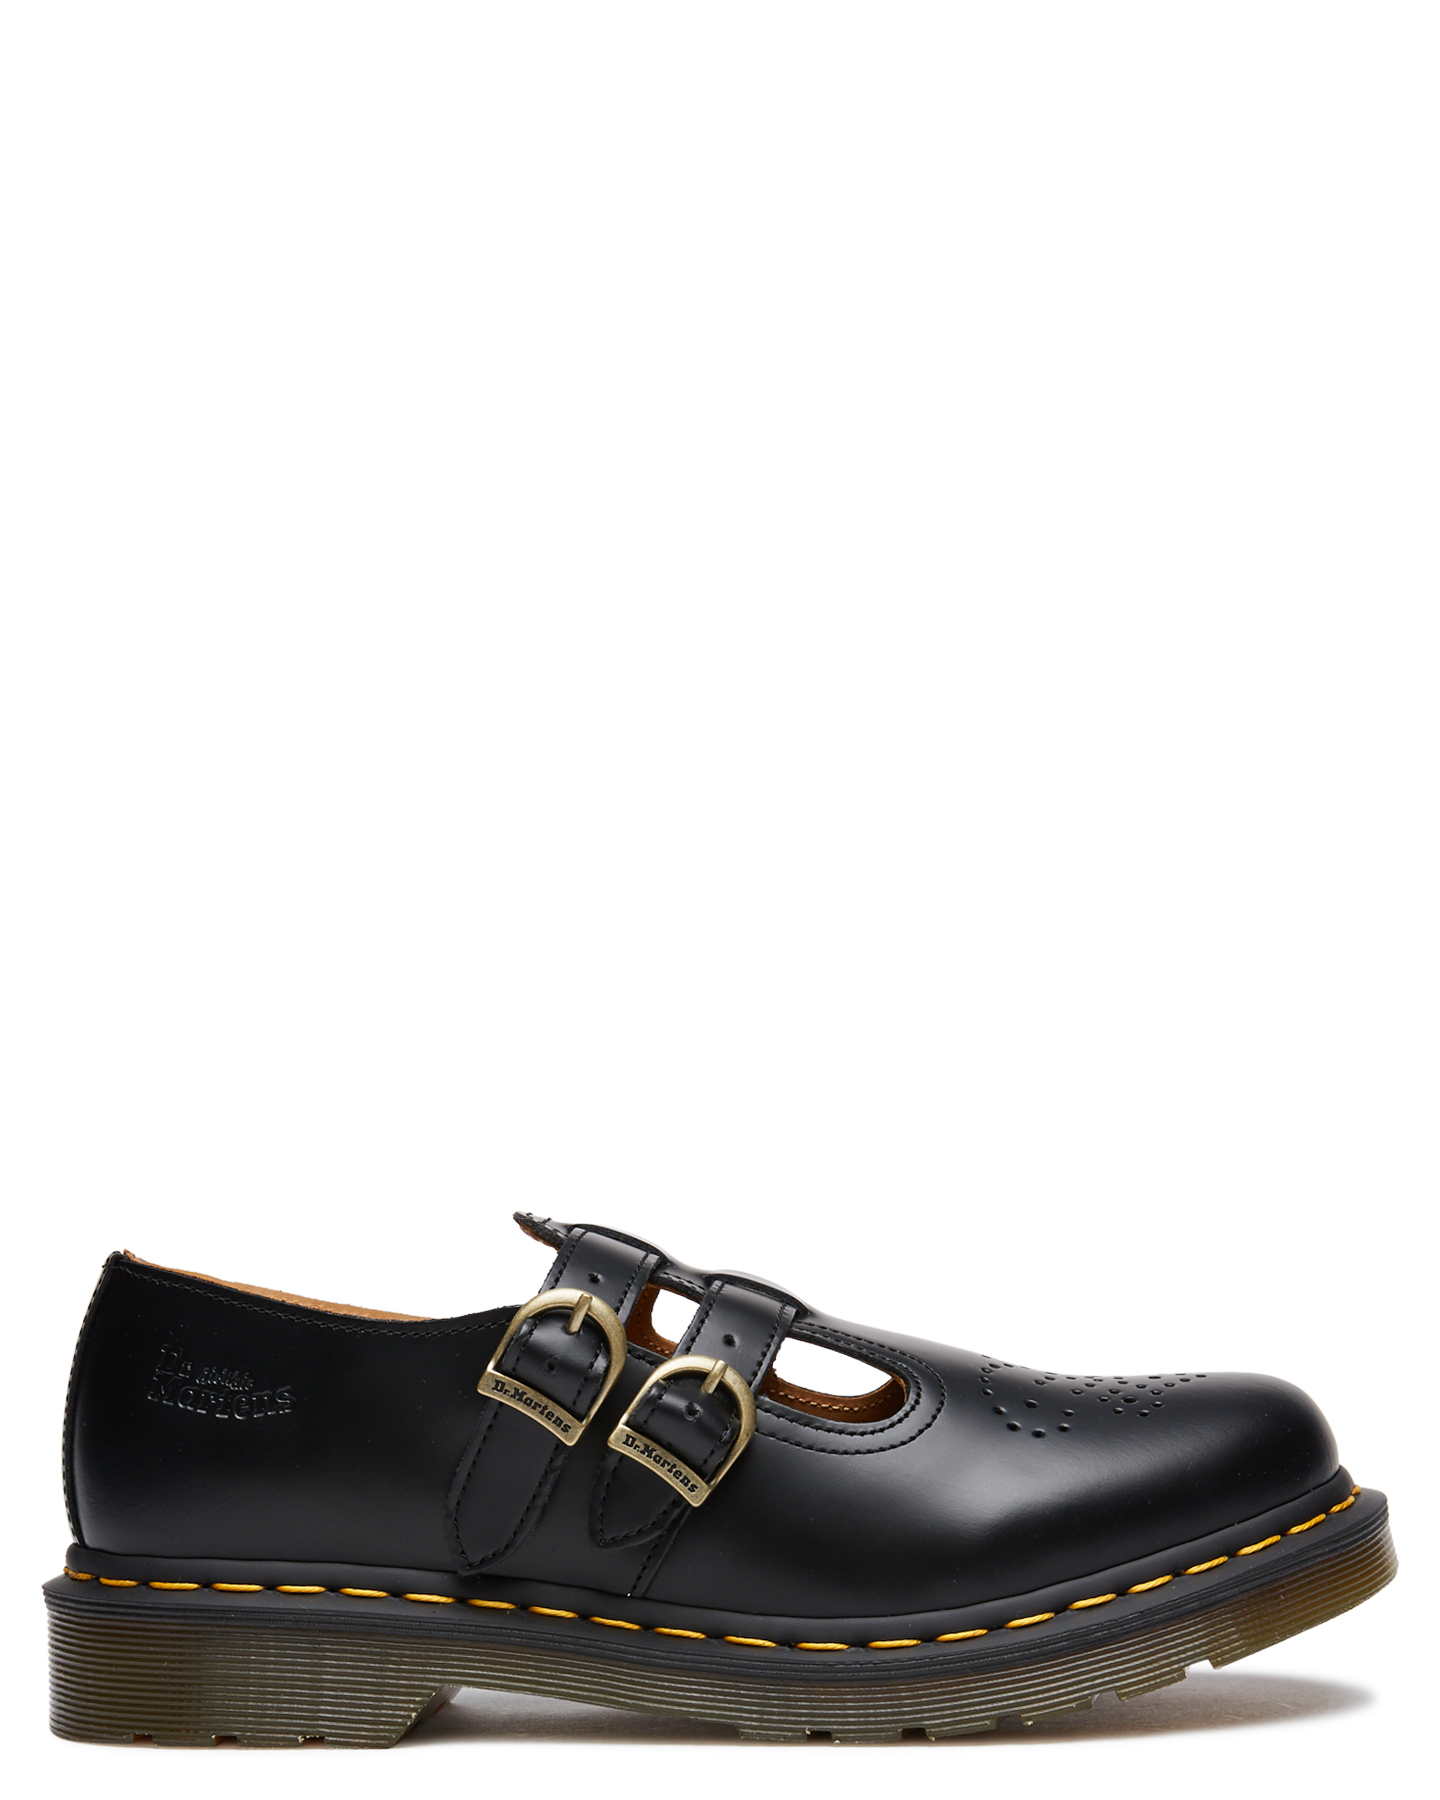 Womens Mary Jane Leather Shoes Stitched Air Sole Black